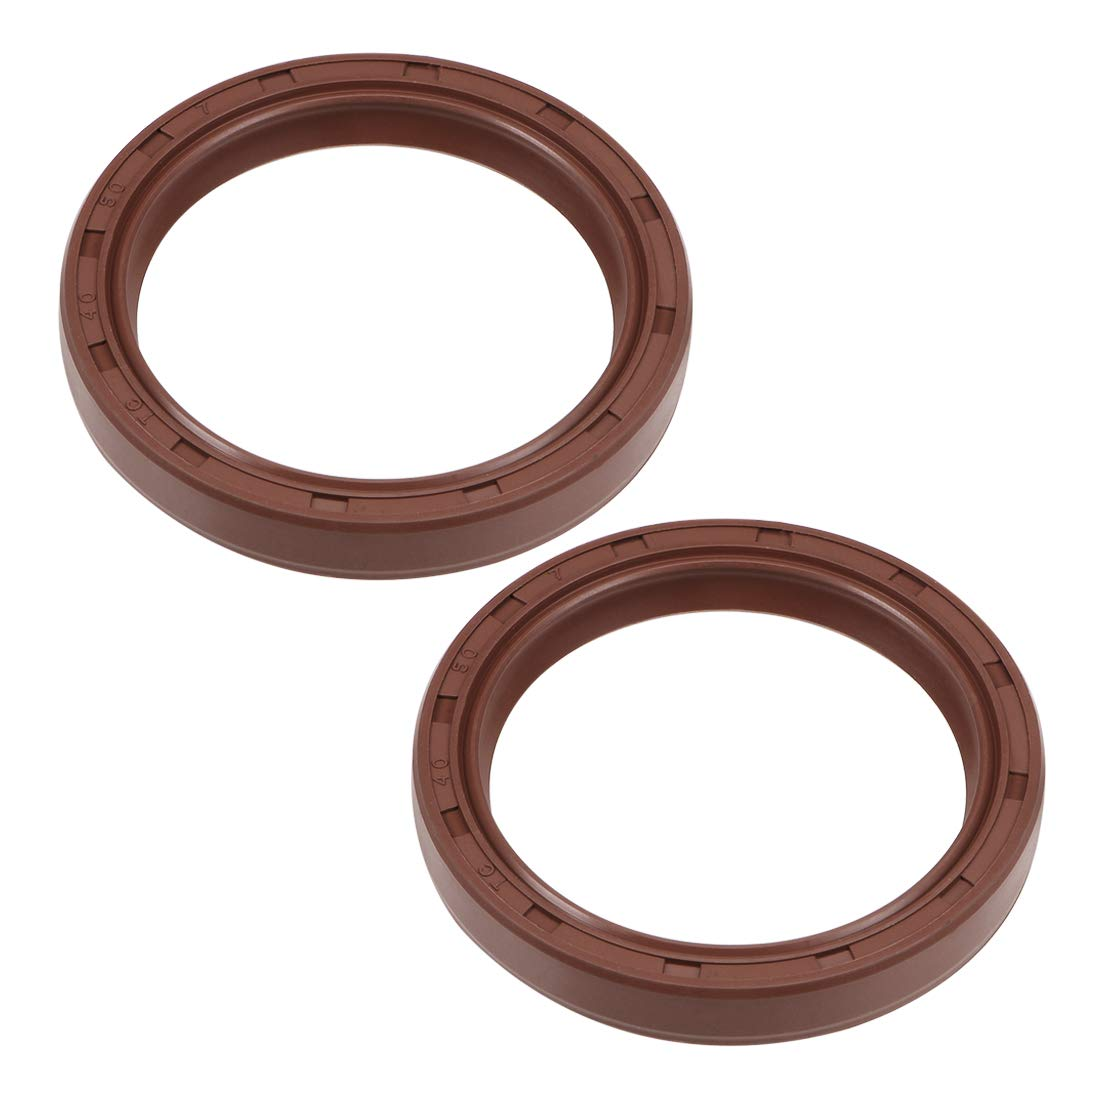 28 mm oil seal Internal diameter 45 mm OD 10 mm Thick fluorine rubber double lip seals 2 pieces